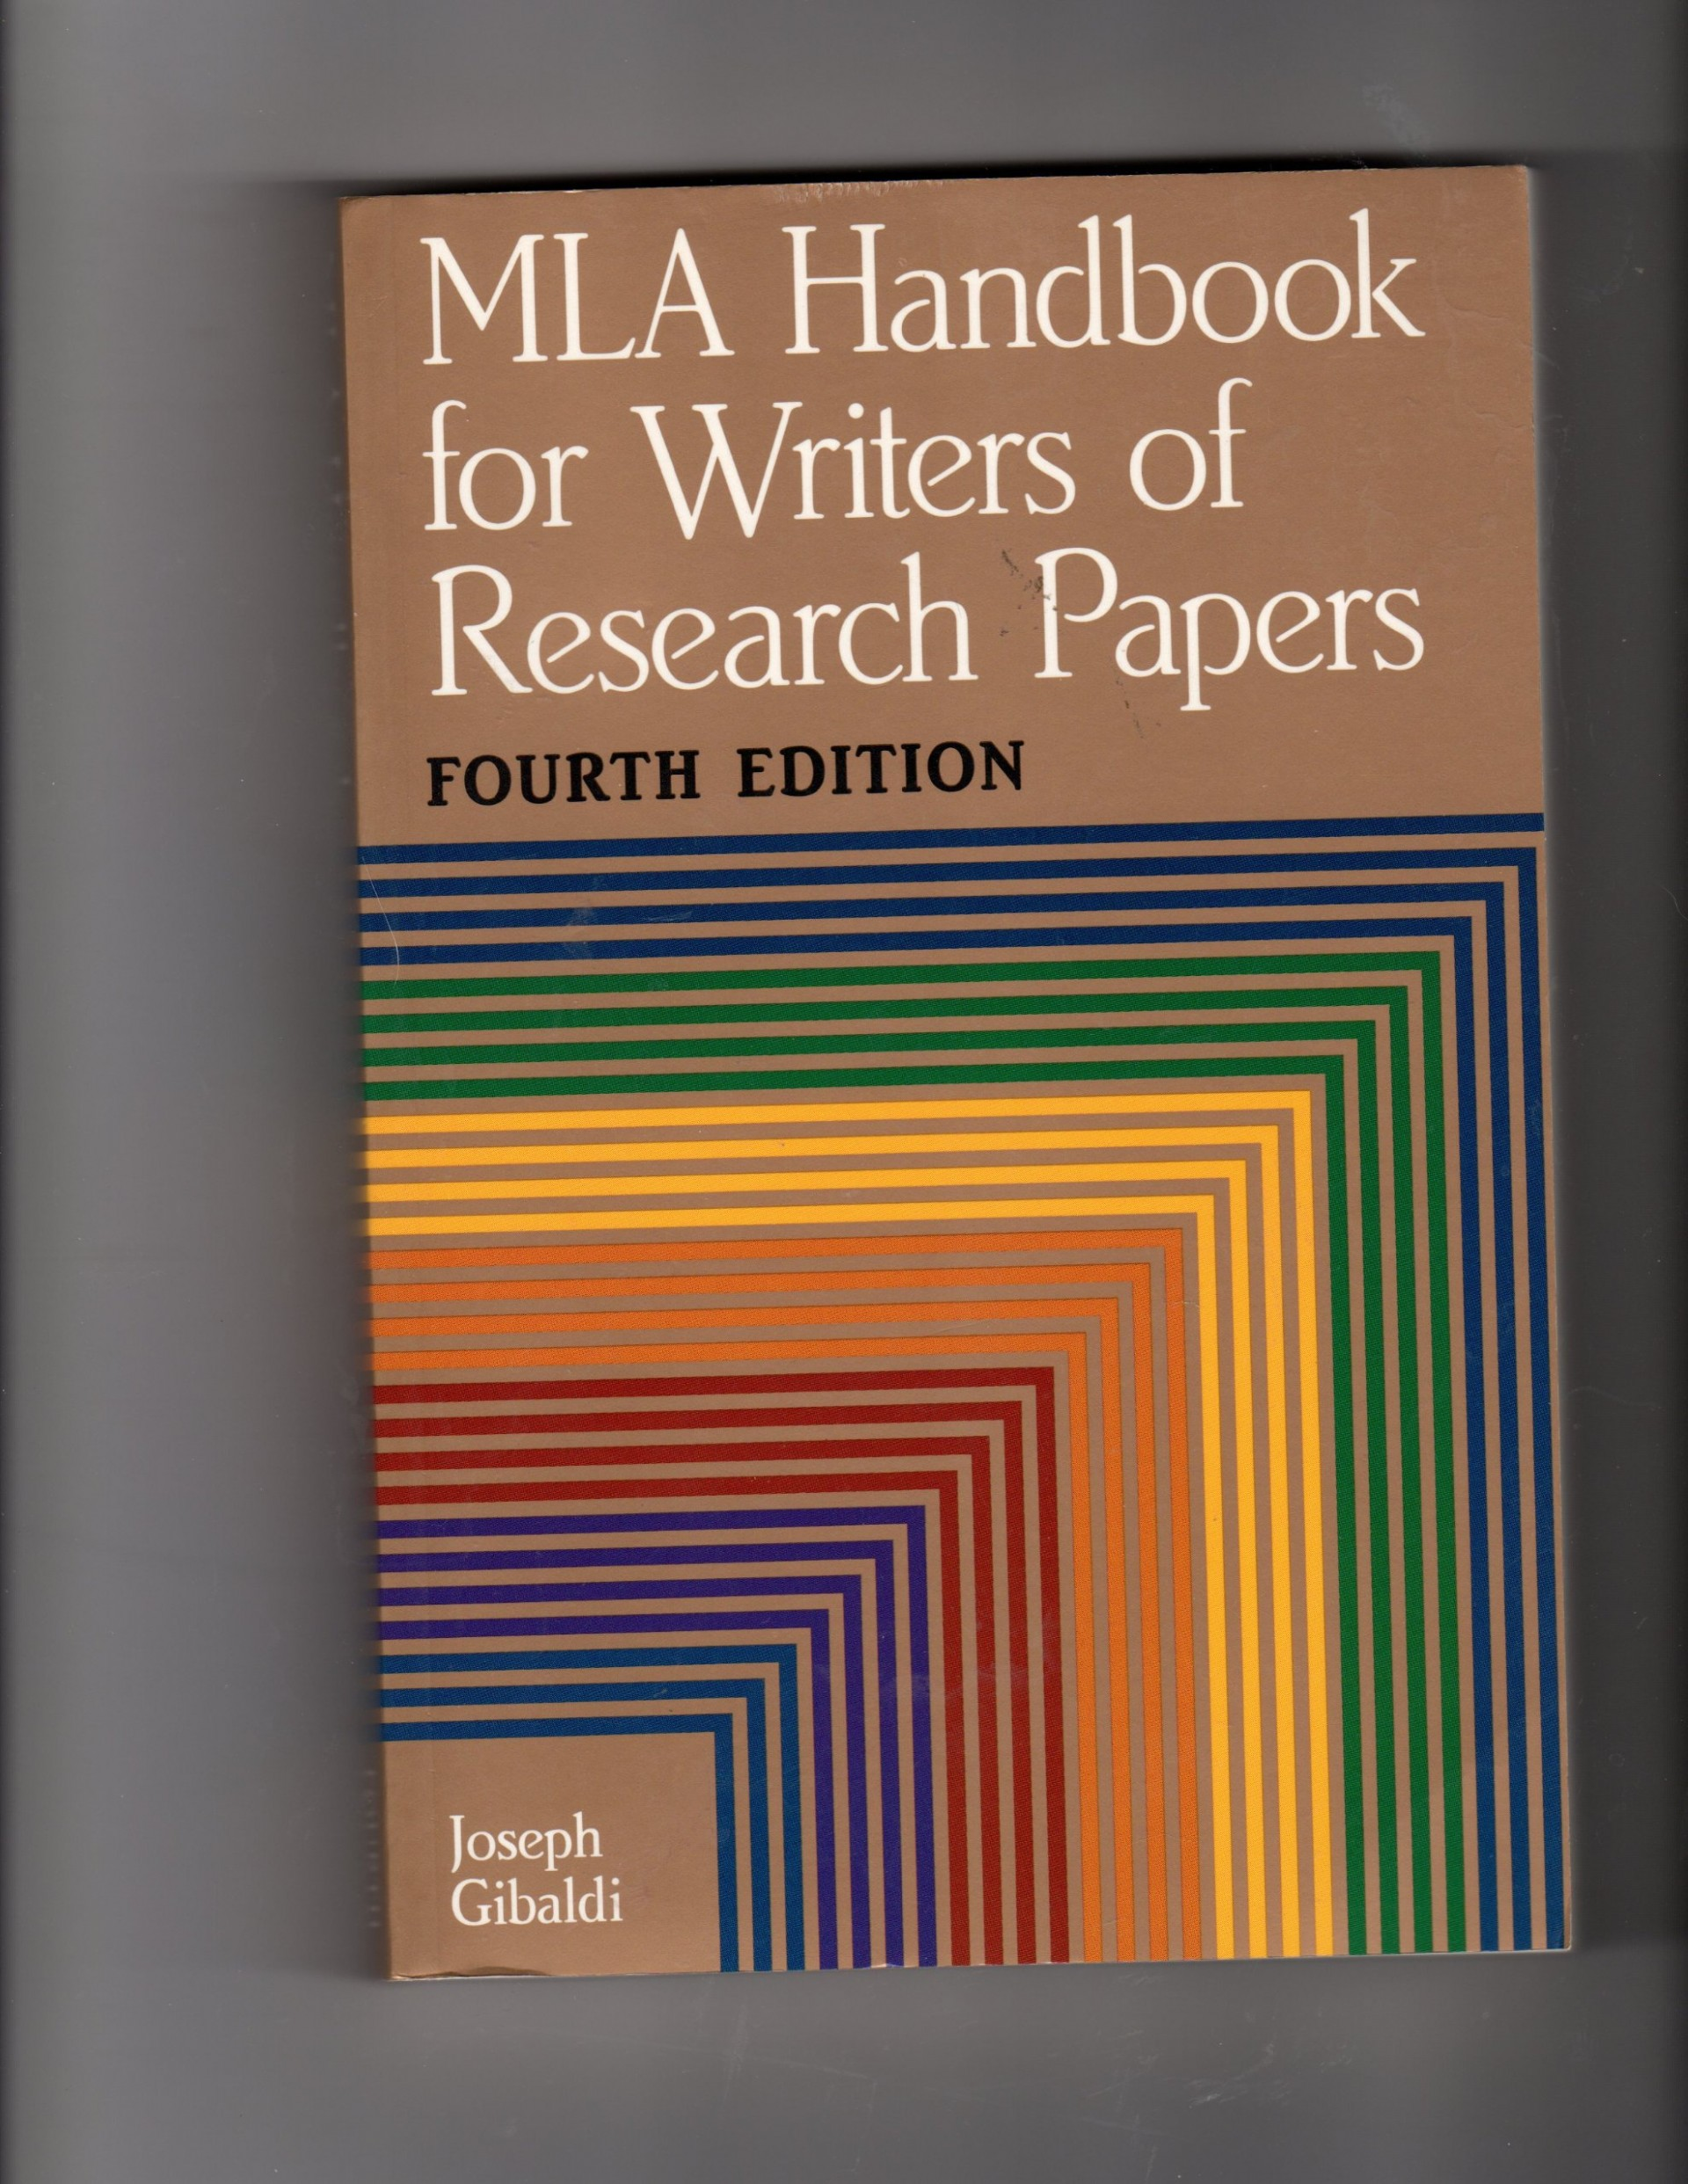 002 91or7esc2gl Mla Handbook For Writing Researchs Frightening Research Papers Writers Of 8th Edition Pdf Free Download According To The 1920